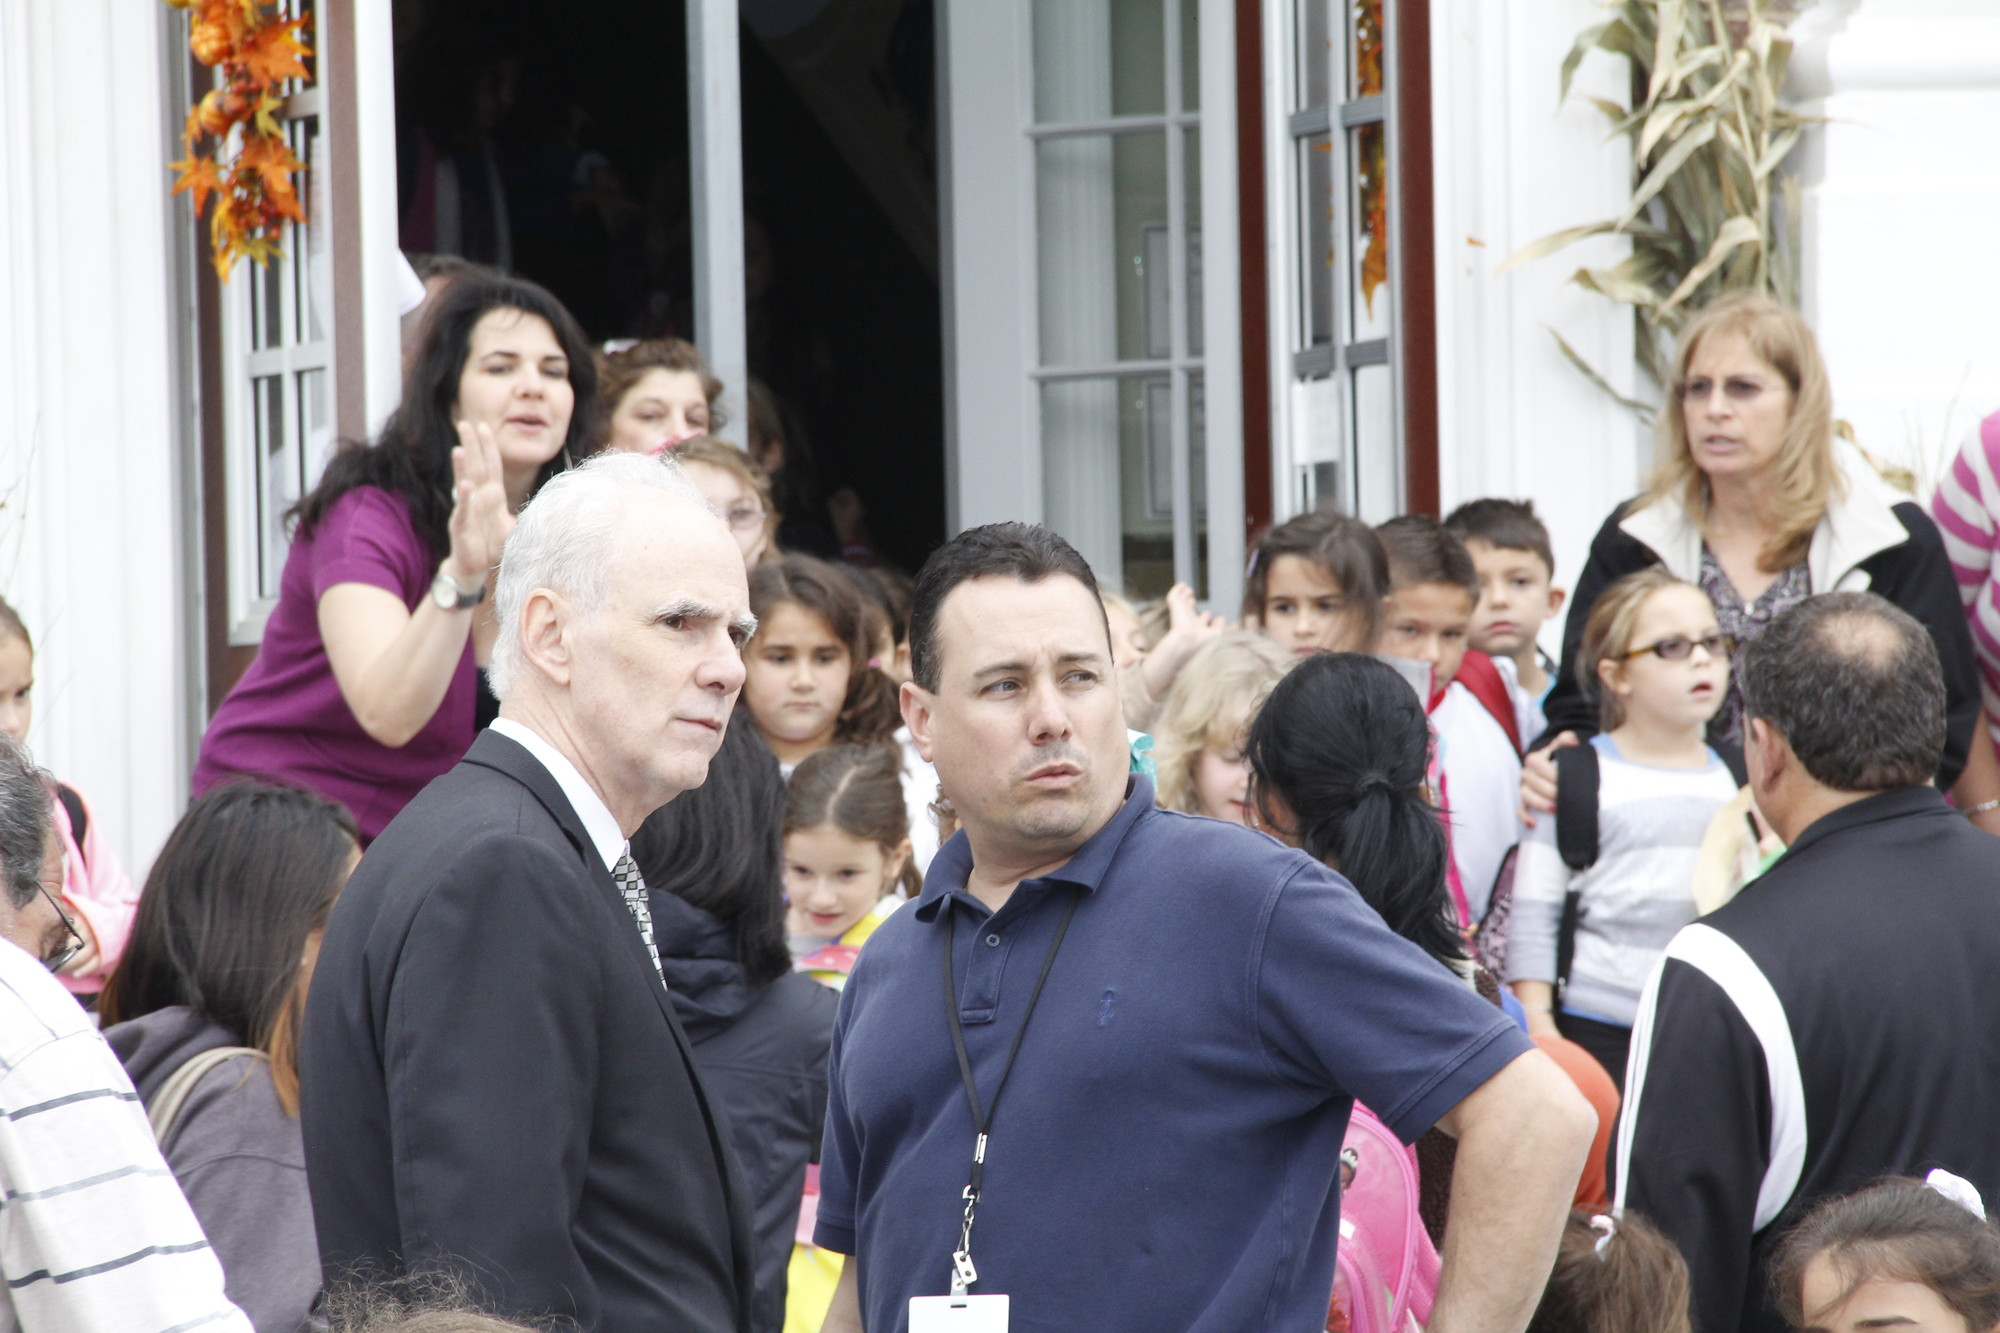 David Feller, superintendent of the North Merrick School District, left, and James Saitta, the district's facilities director, right, were on hand Thursday afternoon at Camp Avenue School talking to parents, students, and emergency responders.